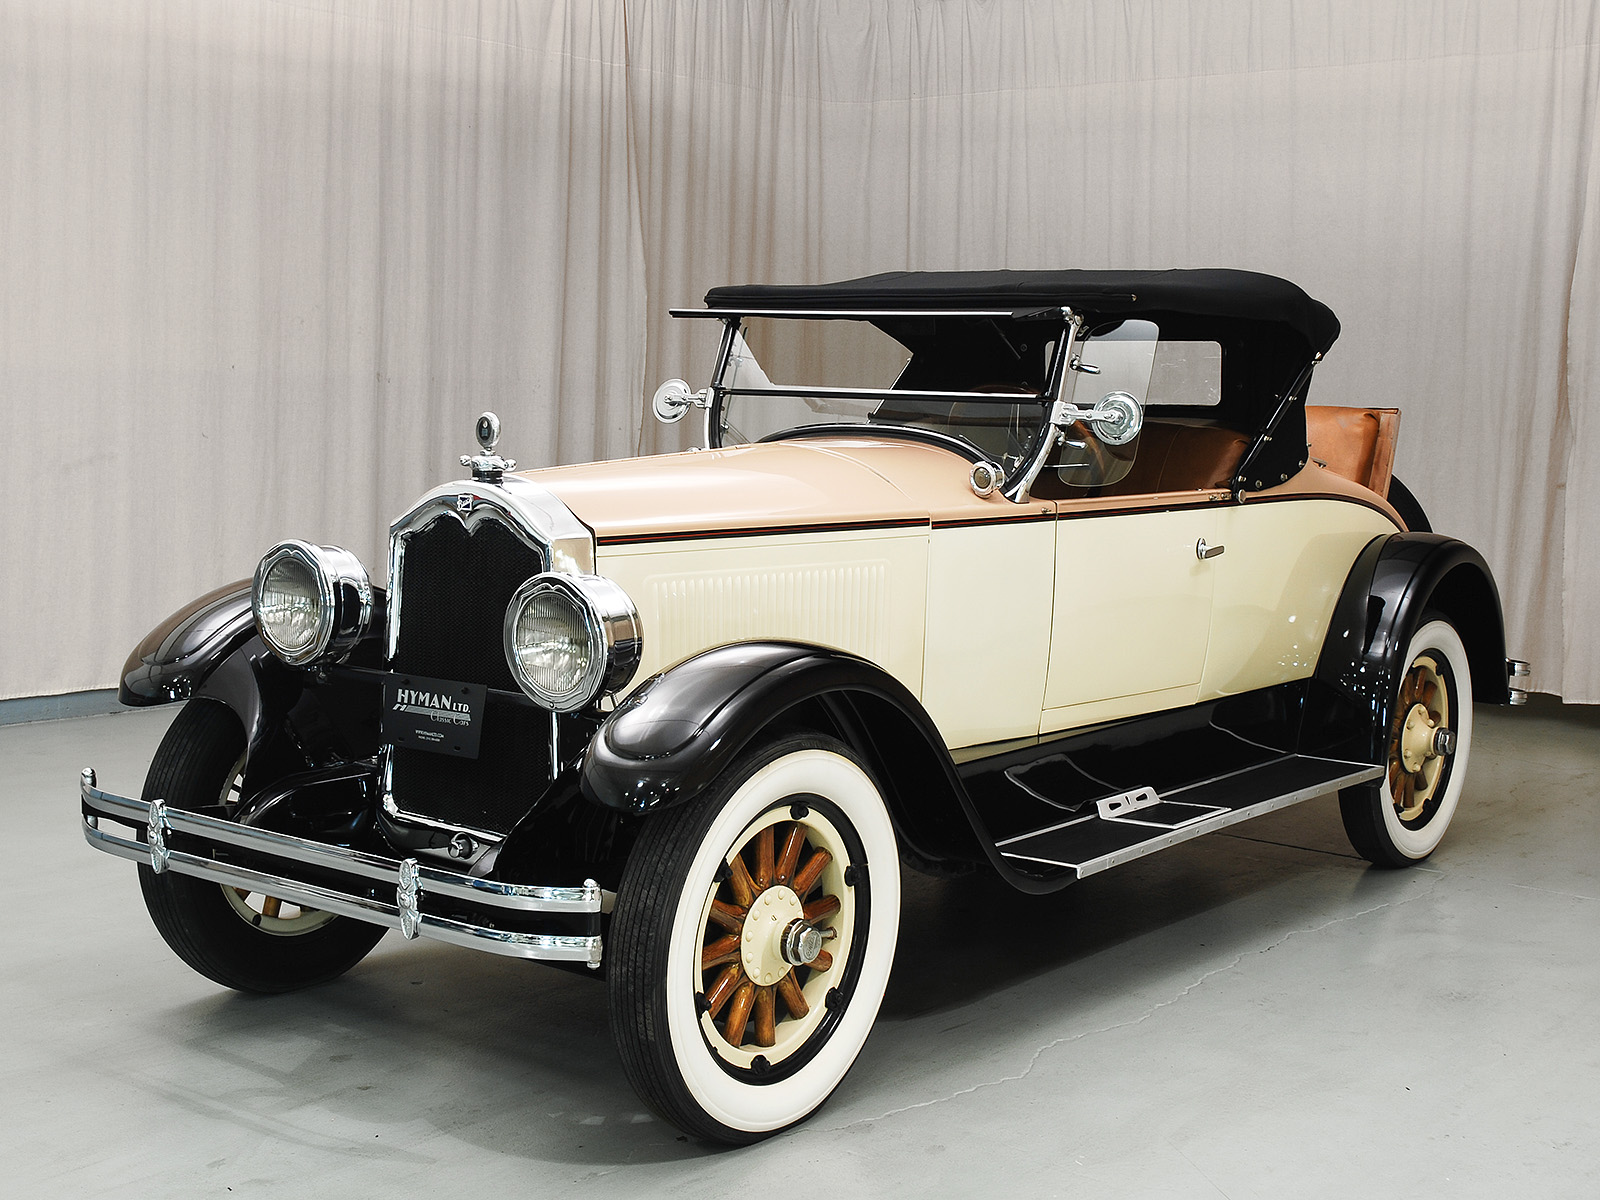 1926 Buick Master Sports Roadster Hyman Ltd Classic Cars